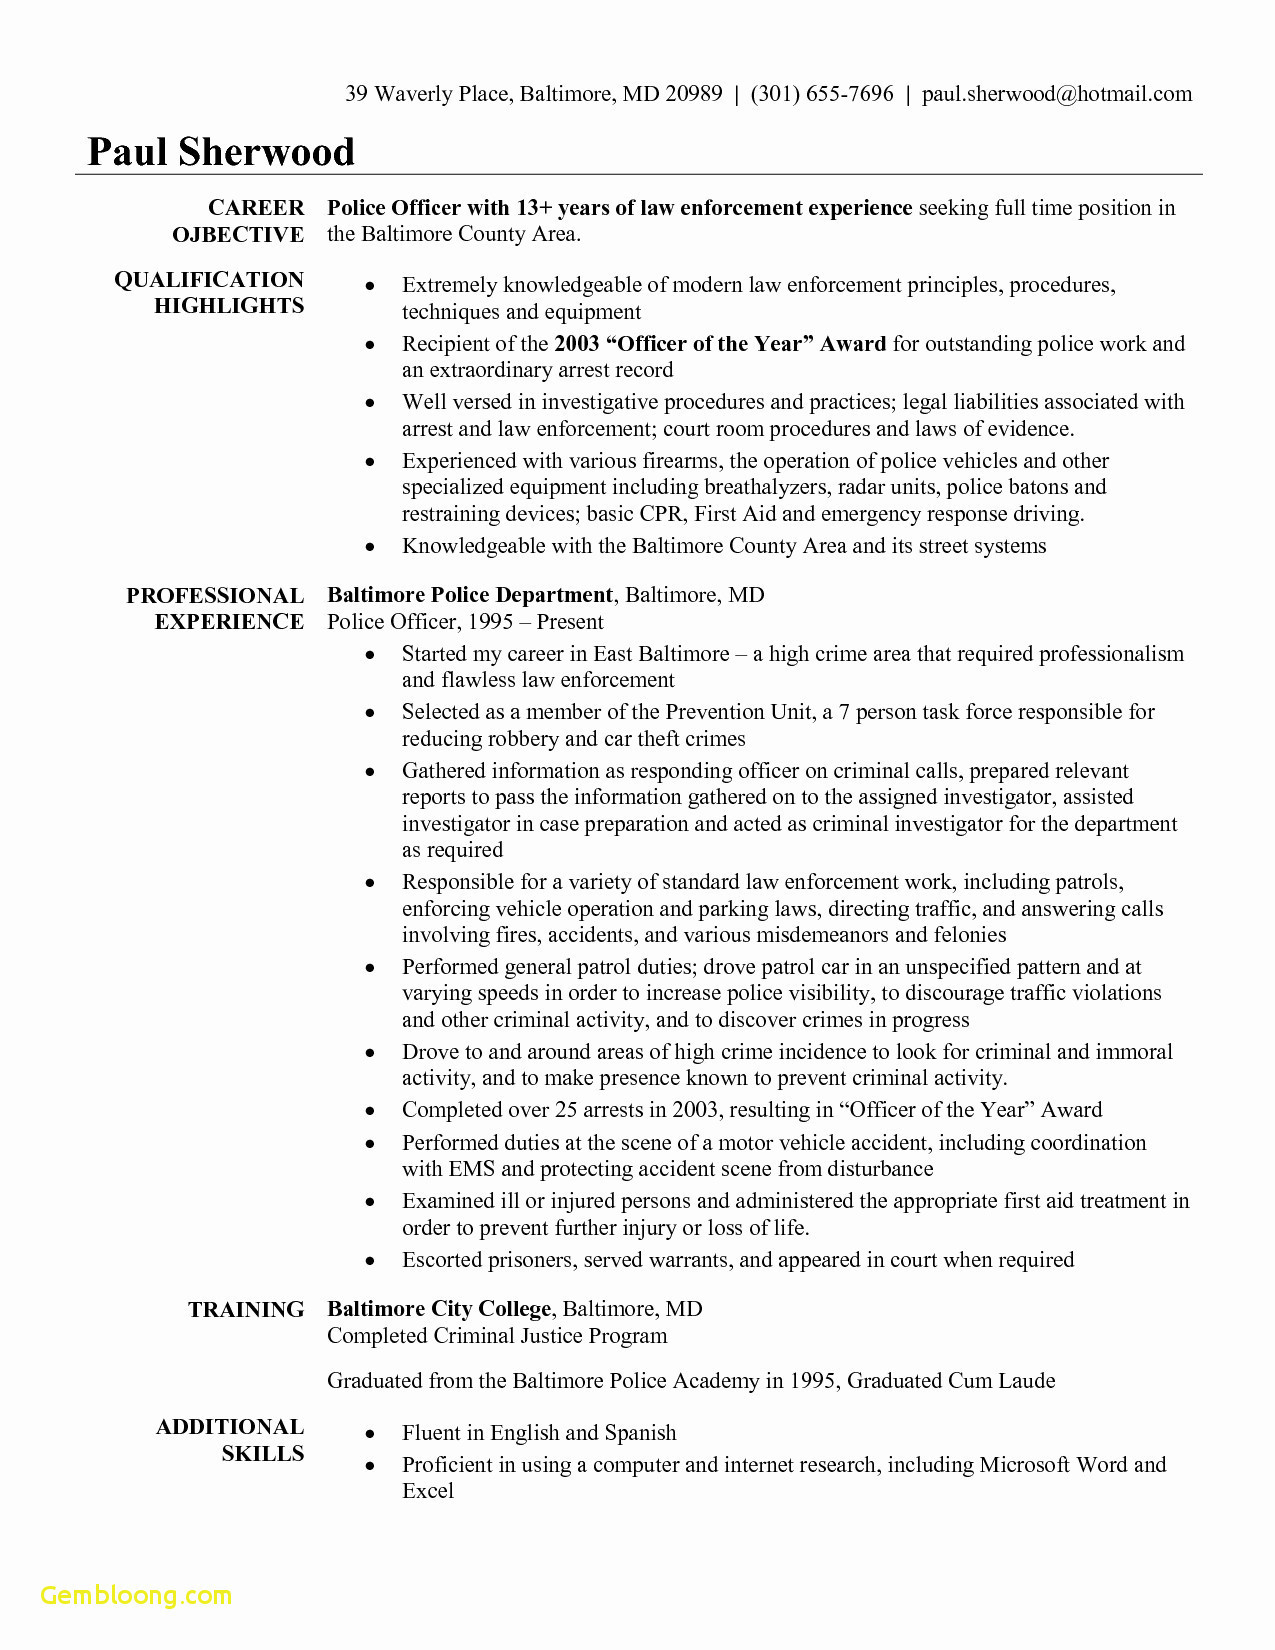 law school resume template word Collection-How To Write A Resume For Law School Admission List Legal Resume Template Word 16-i